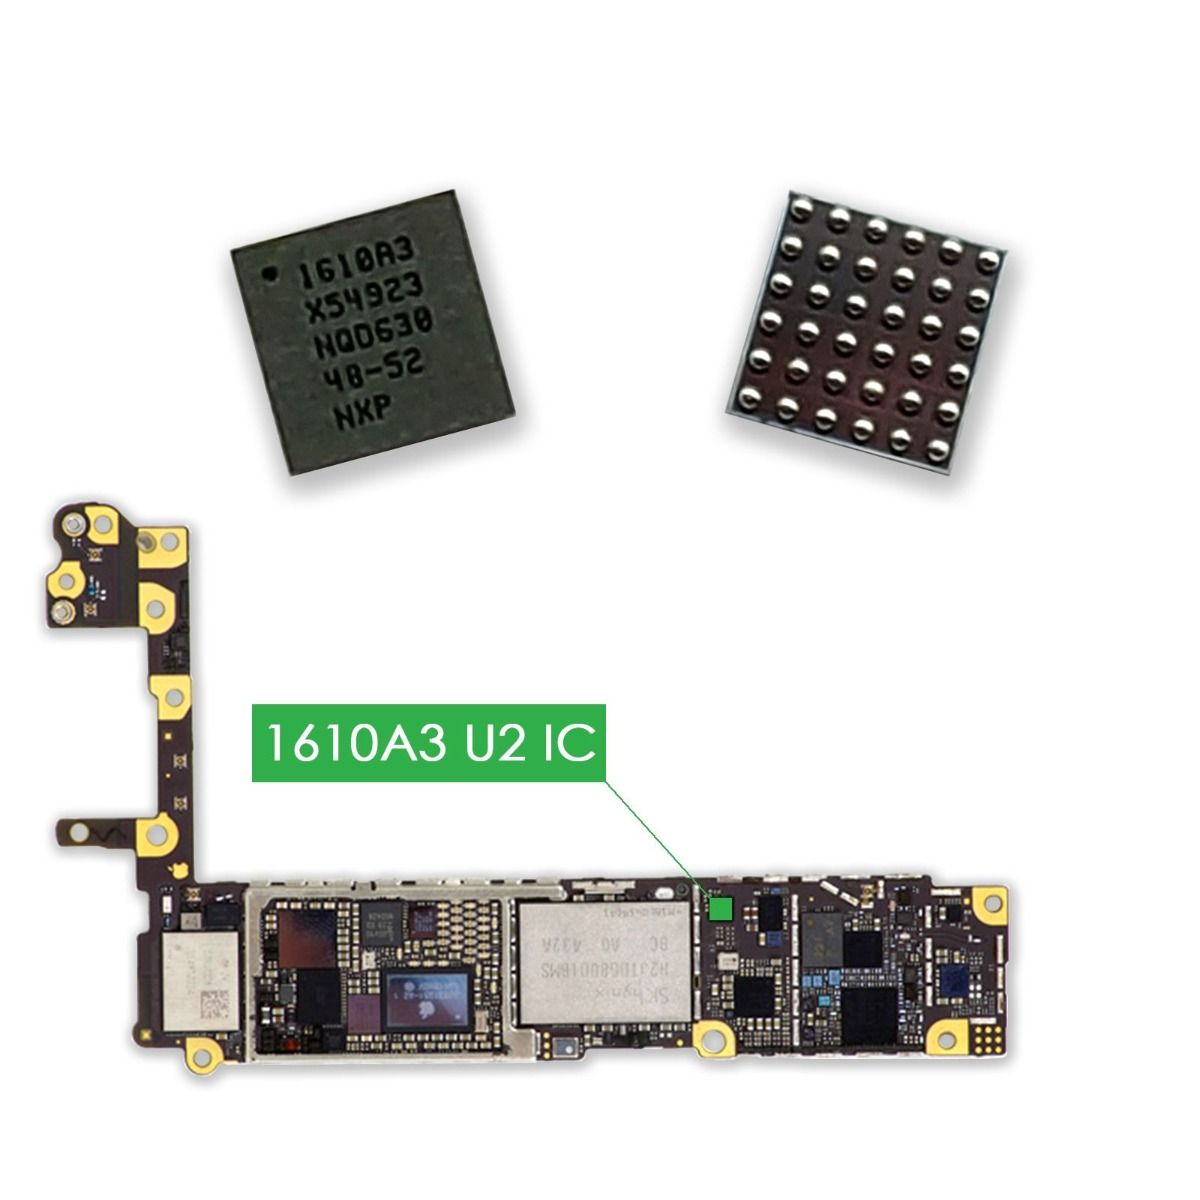 U2 Charging IC Tristar Chip Power IC 1610A3 for iPhone 6, iPhone 6 Plus, iPhone SE, iPhone 6S, iPhone 6S Plus